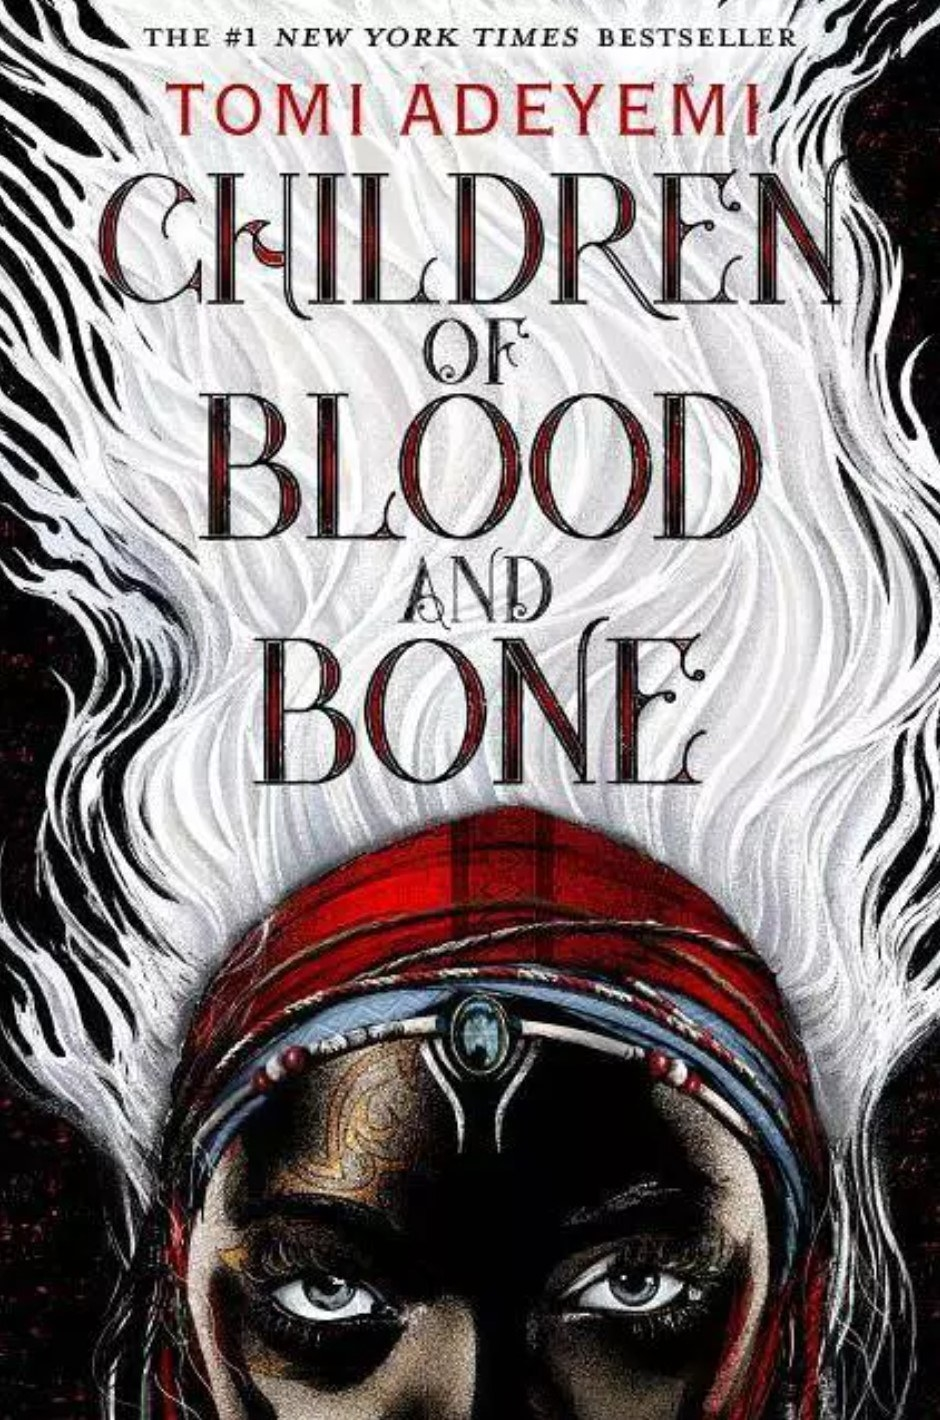 The cover of Children Of Blood And Bone by Tomi Adeyemi